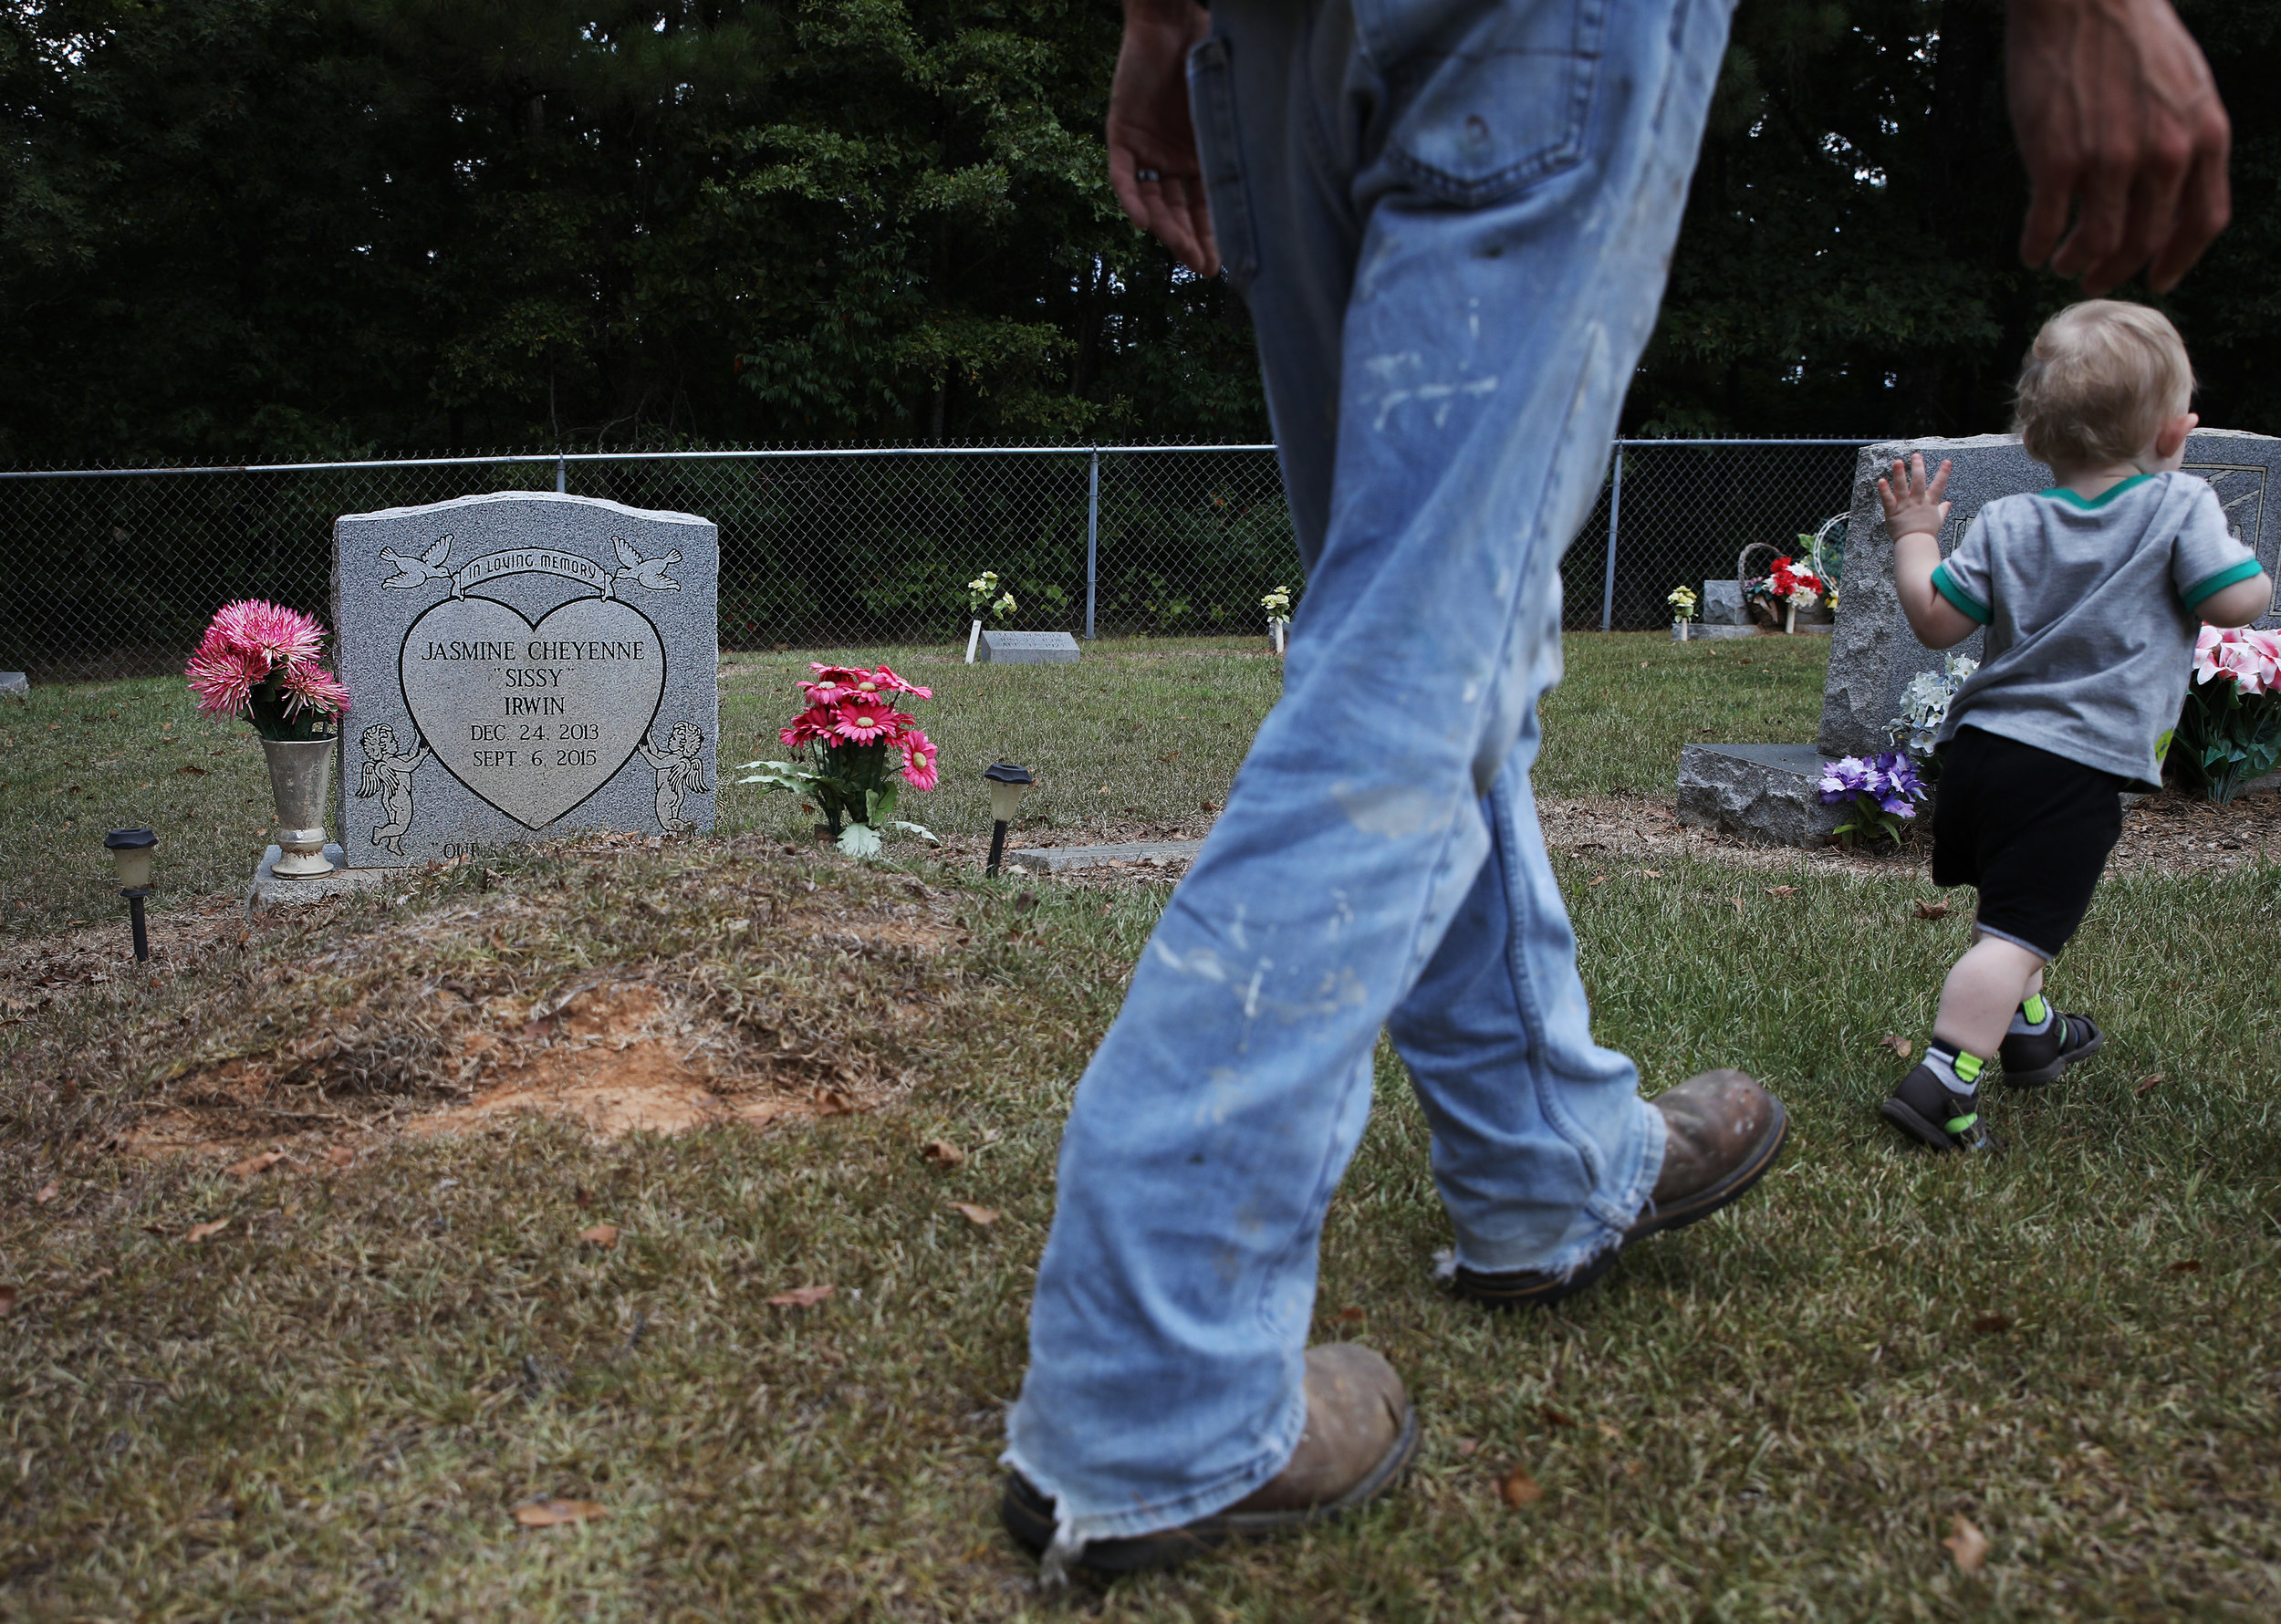 Dylan Mann chases after his 14-month-old stepson Jason while they visit the grave of Dylan's niece, Jasmine. Jasmine was 2-years-old when she was killed by her mother, Tami Mann. Jasmine was killed in September of 2015 and this is the first time that Dylan has visited her grave.